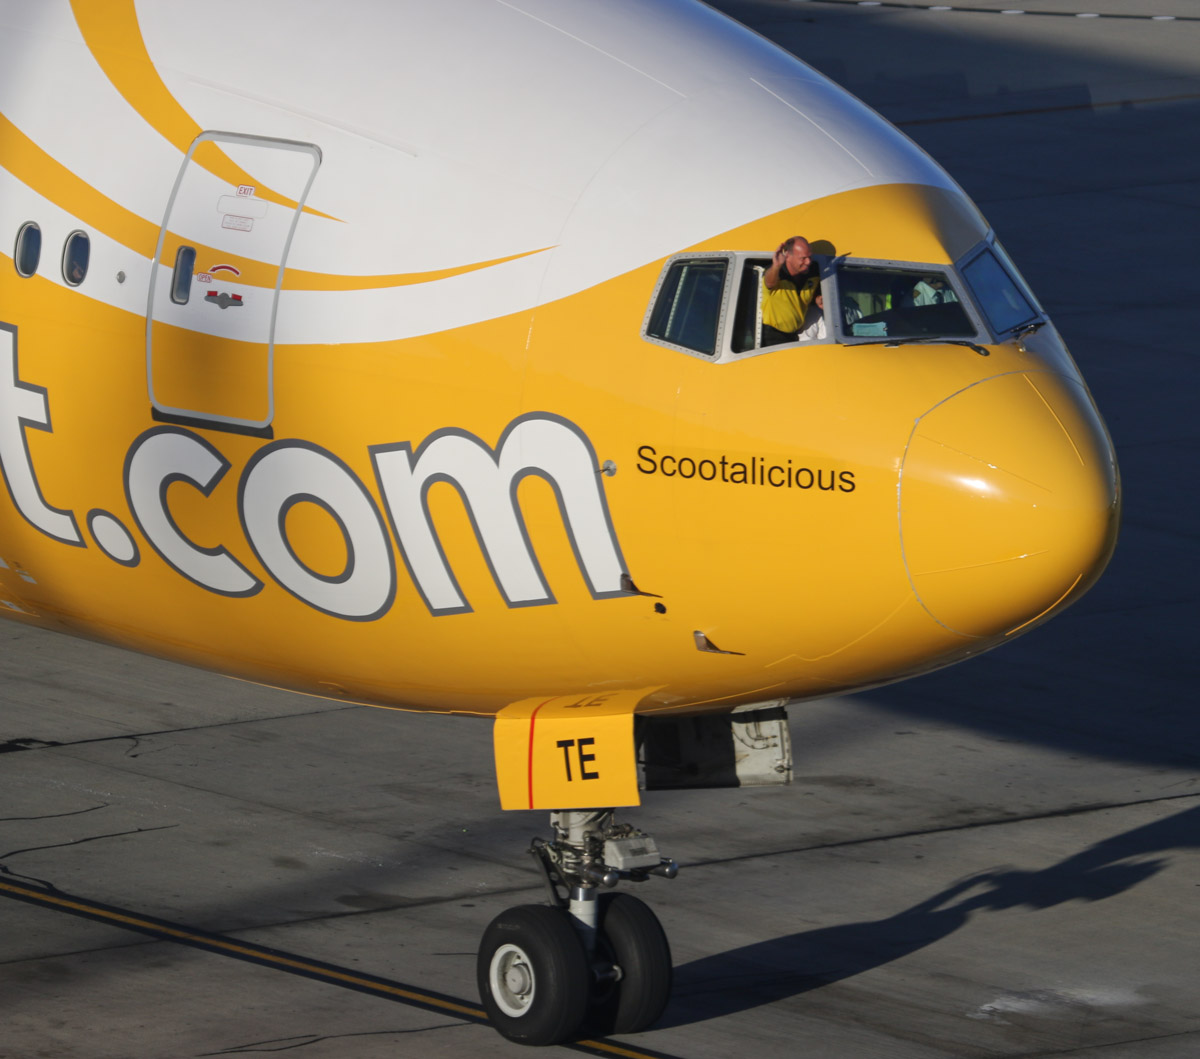 """9V-OTE Boeing 777-212ER (MSN 28519/237) of Scoot, named """"Scootalicious"""", with Scoot CEO Campbell Wilson waving to the media at Perth Airport - Thursday 12 December 2013."""